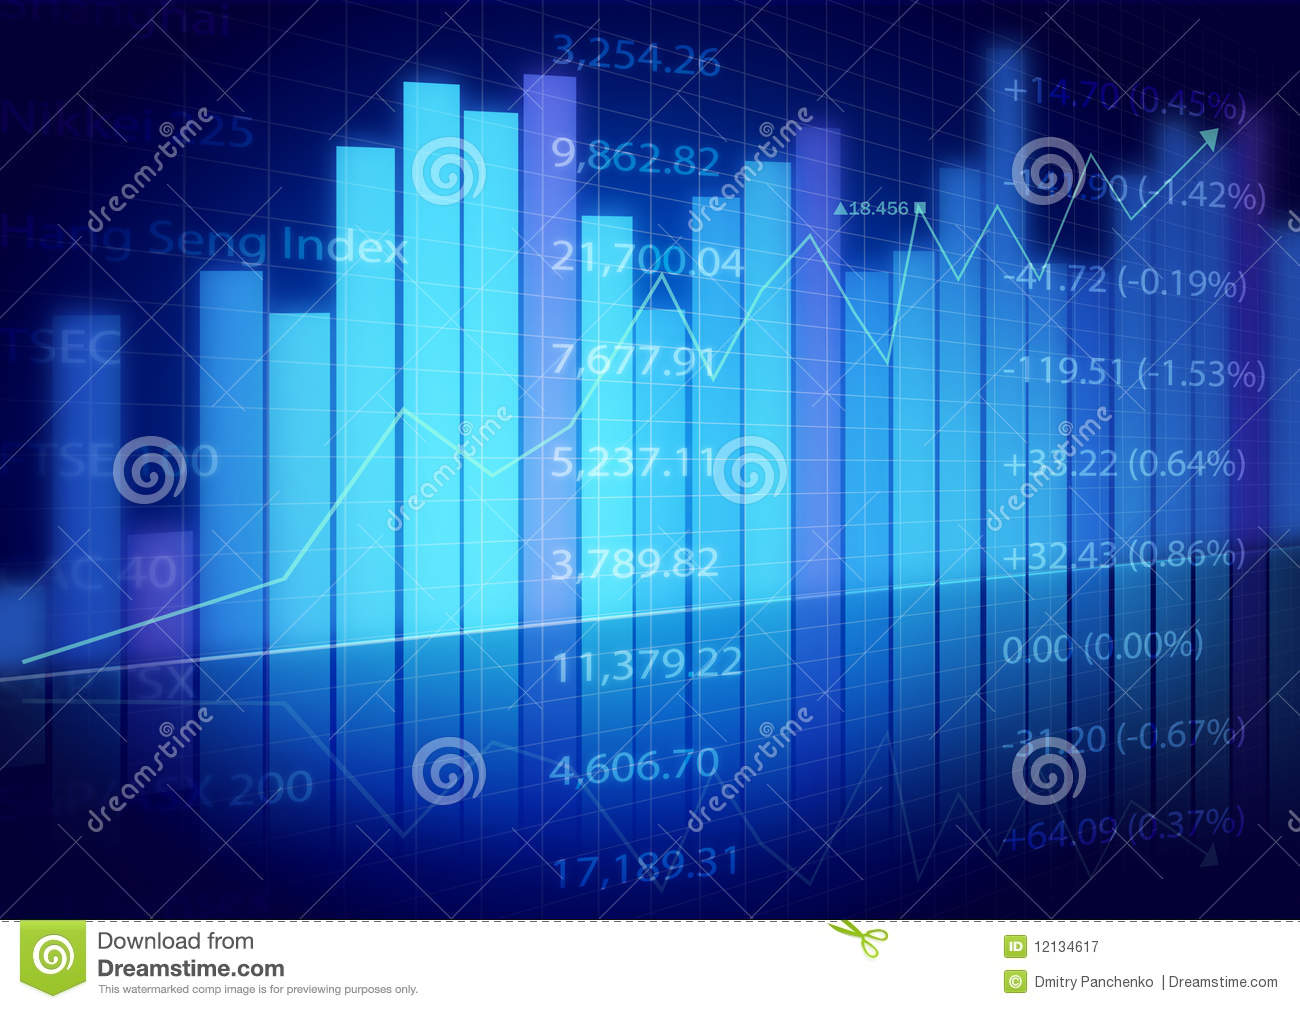 Businessman Quotes Wallpaper Stock Market Charts Royalty Free Stock Photography Image